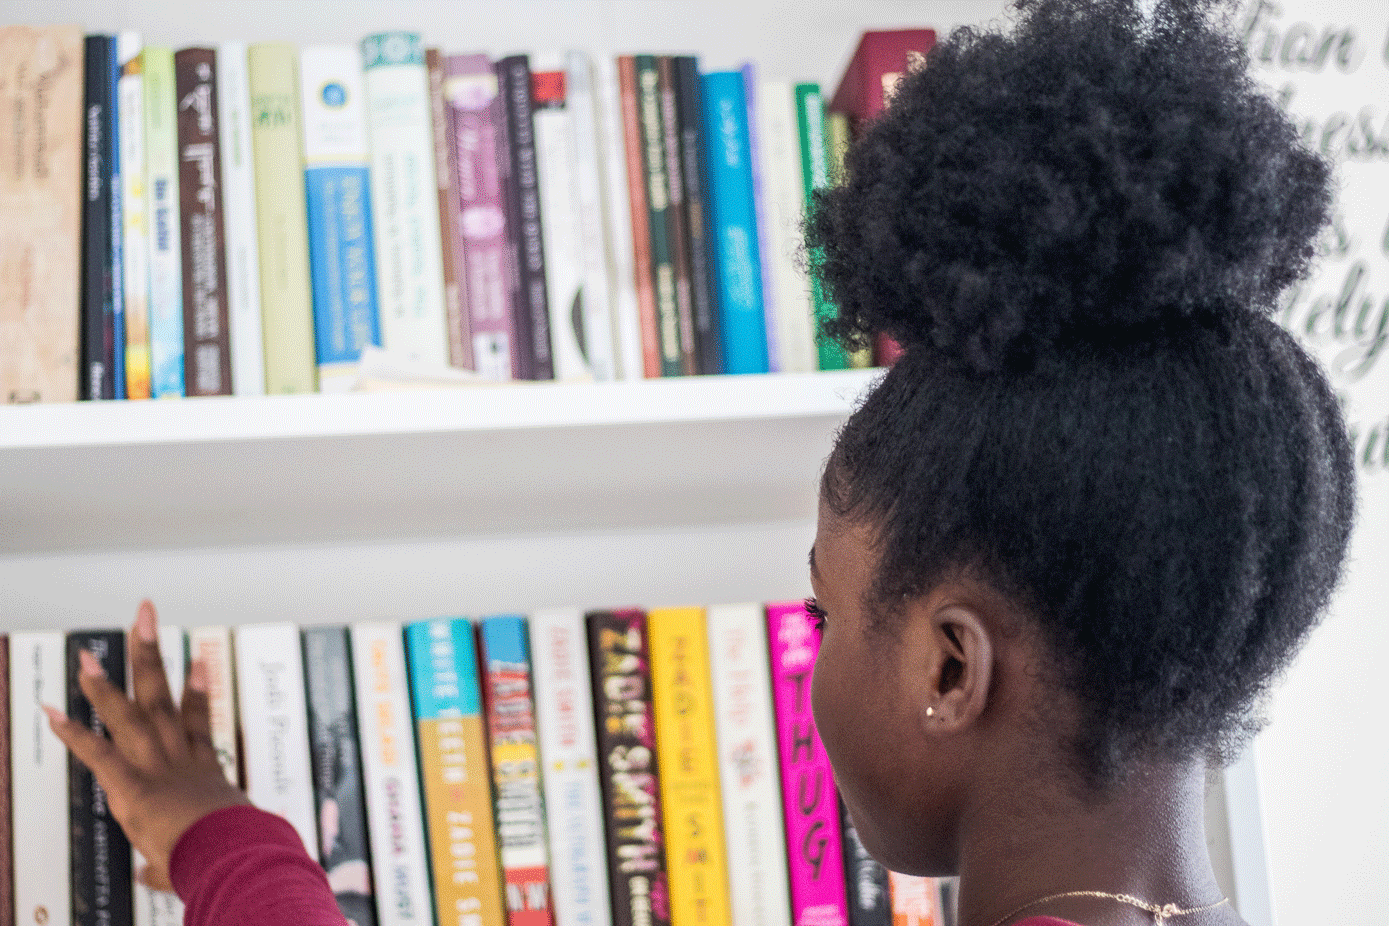 Black African-American little girl looking at books on bookshelf selecting a book